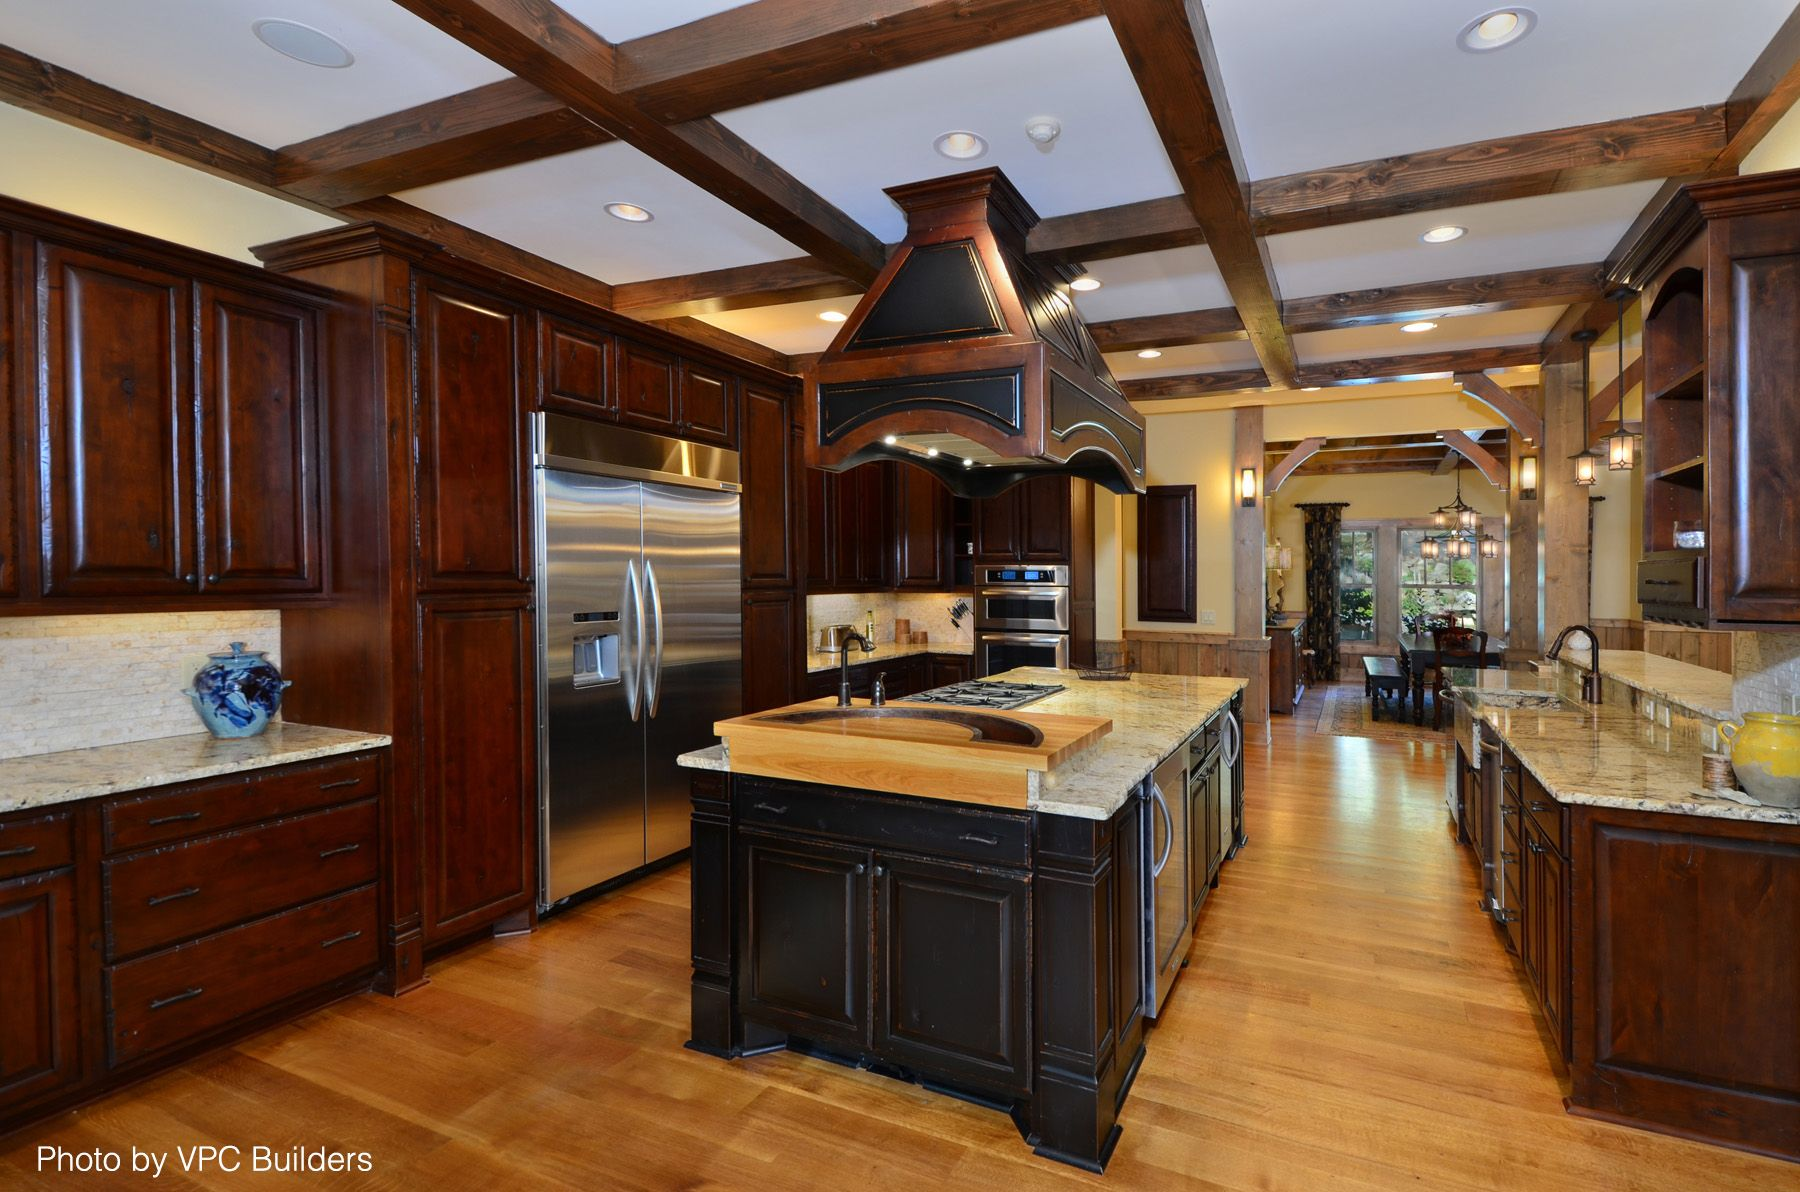 How Much Does It Cost To Remodel A Kitchen? Kitchen